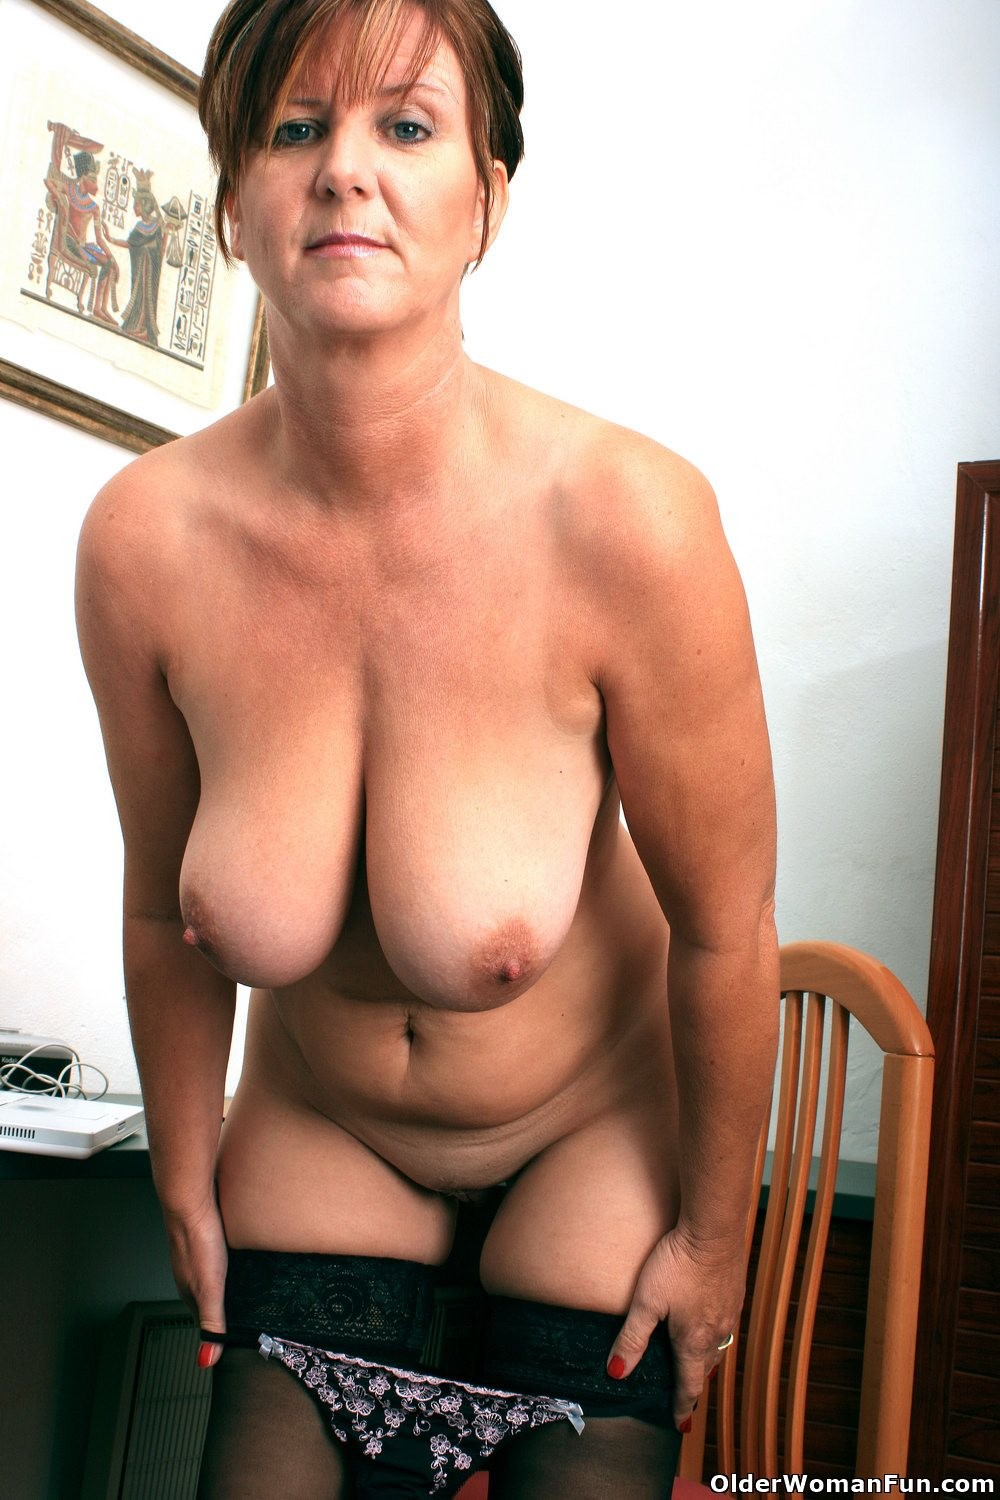 Remarkable, Mature granny joy porn